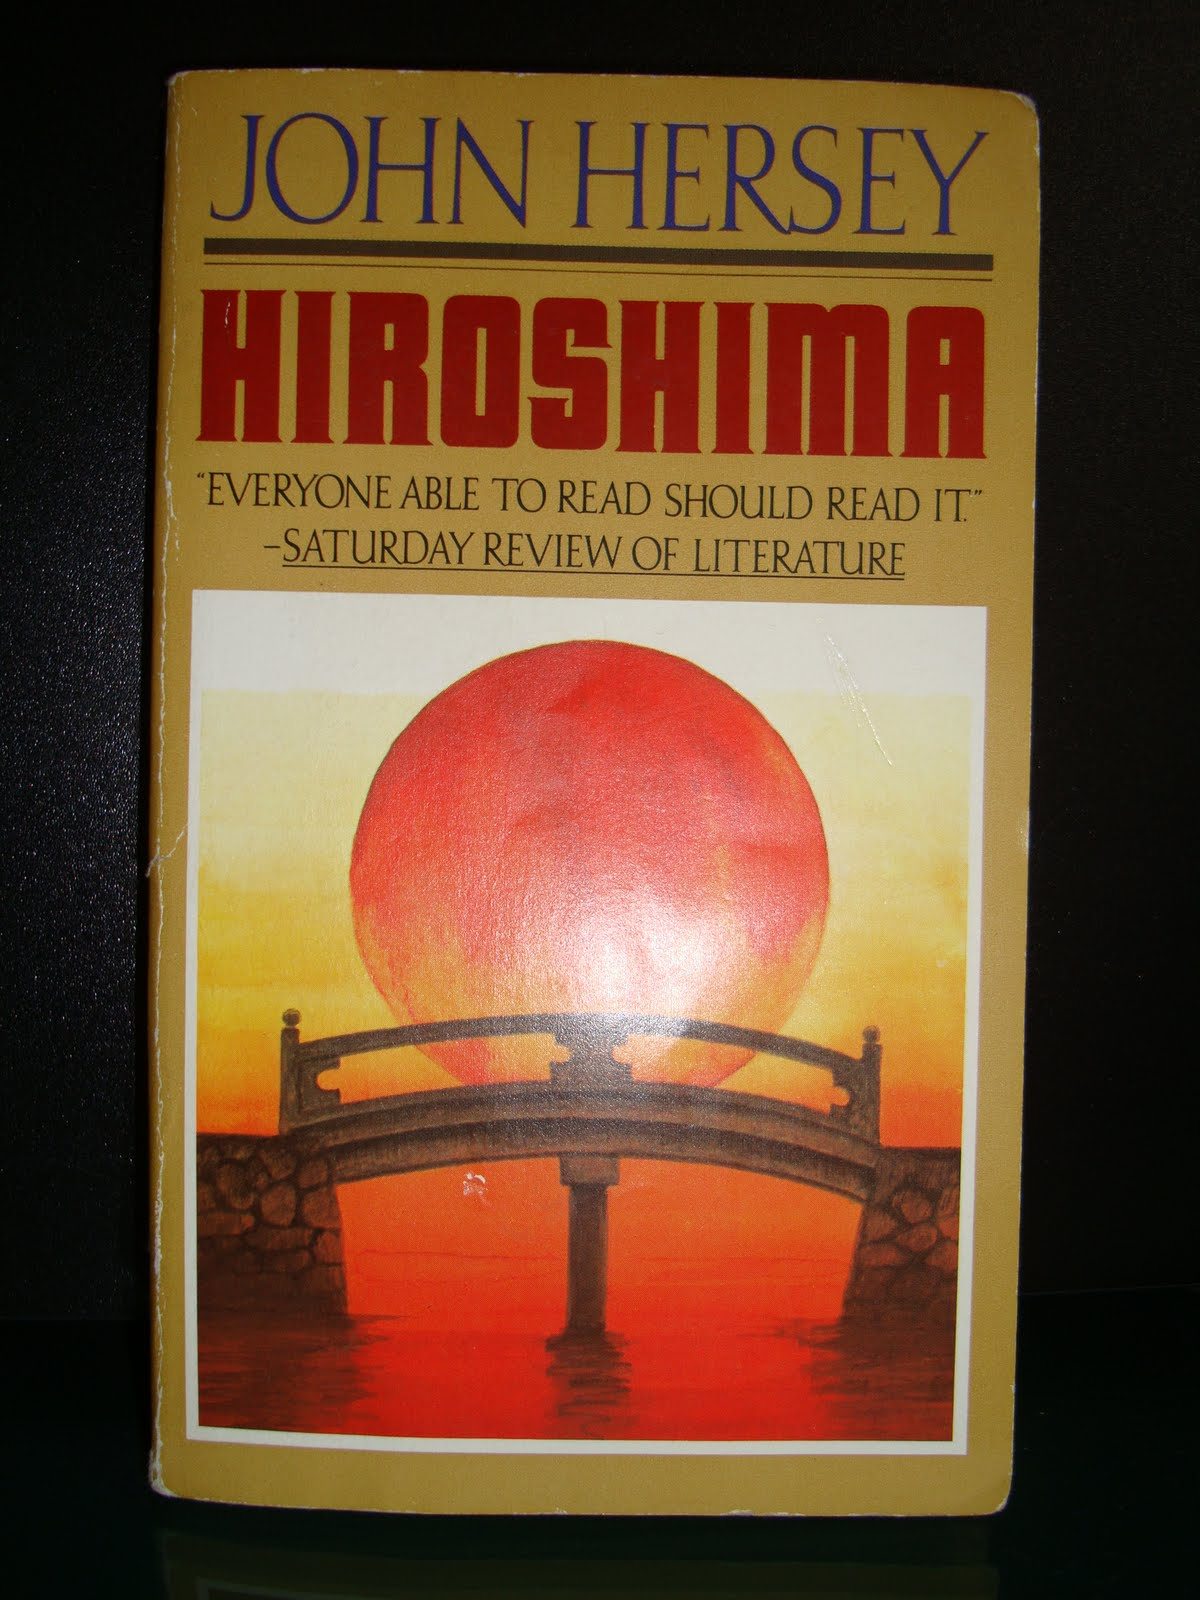 an analysis of the characters of hiroshima by john hersey